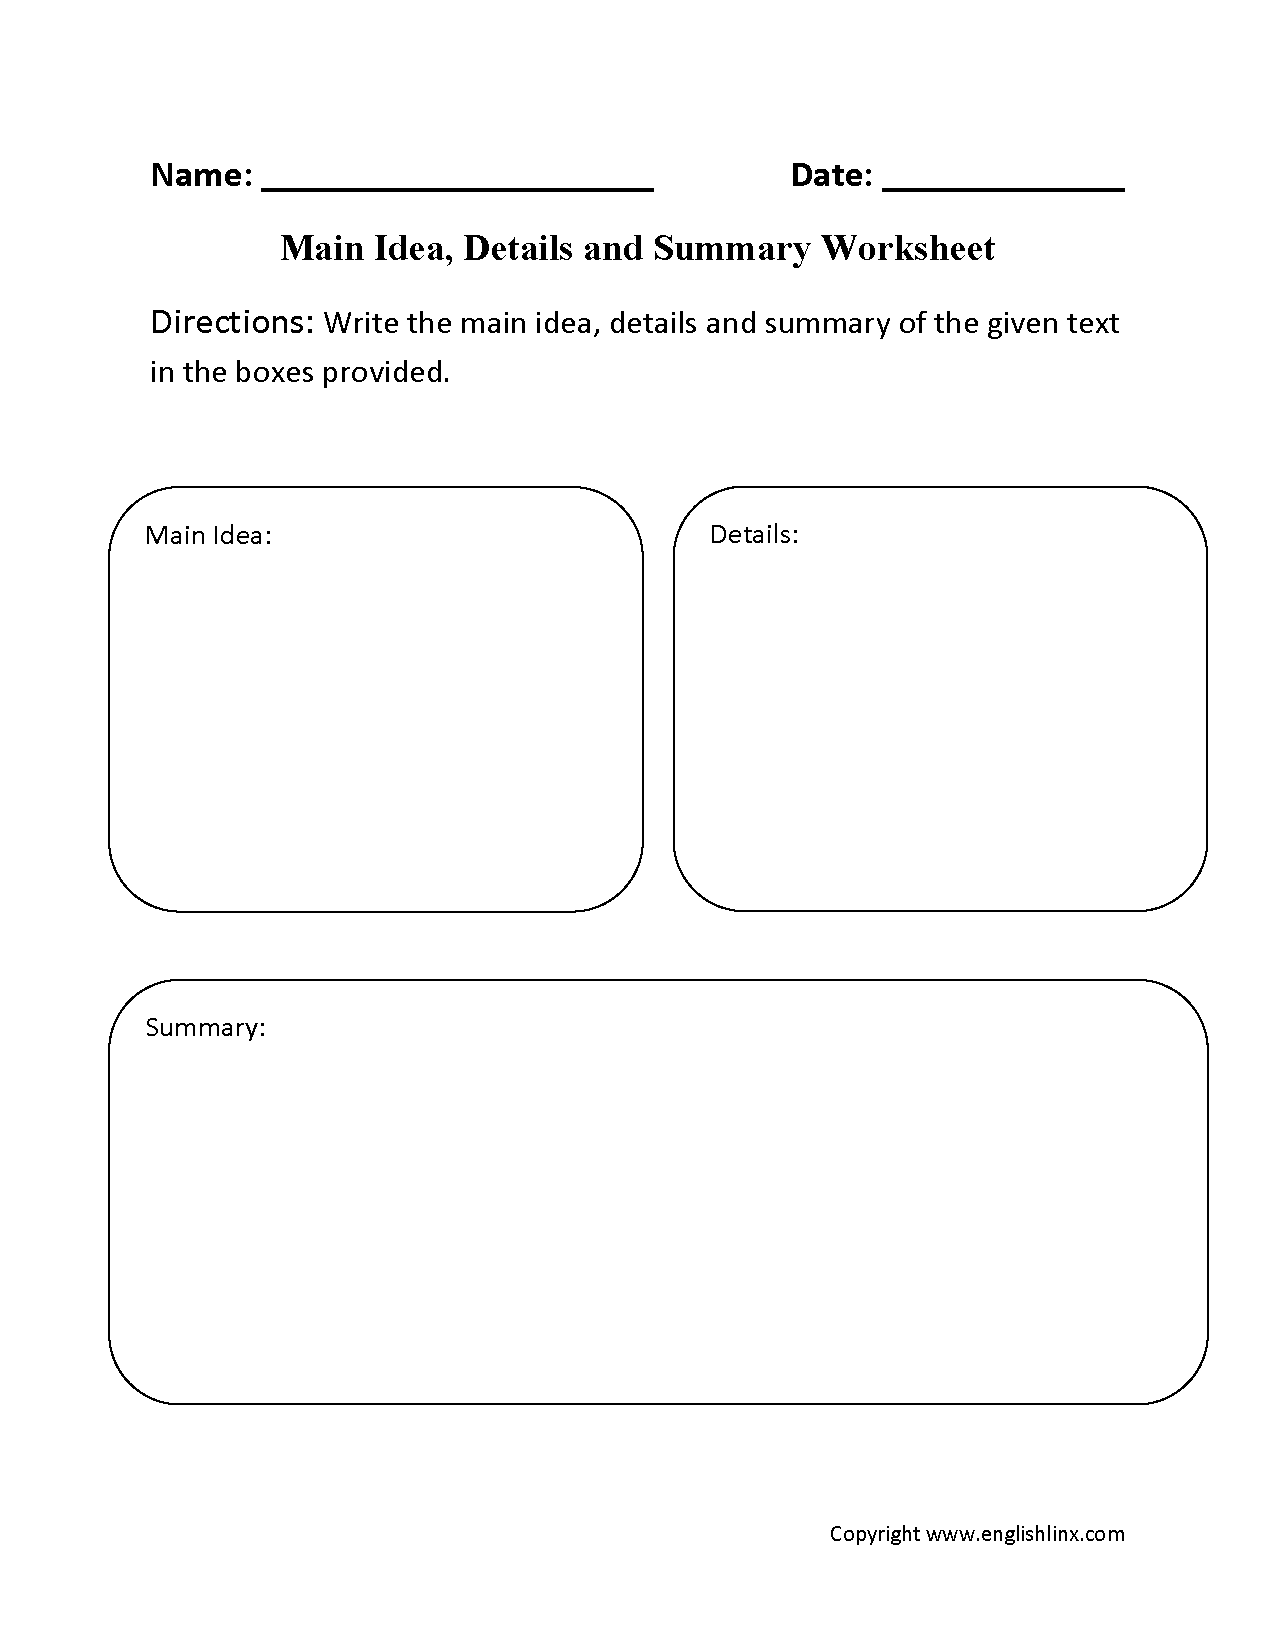 Worksheets Summarizing Worksheet summary worksheets kristawiltbank free printable reading worksheets